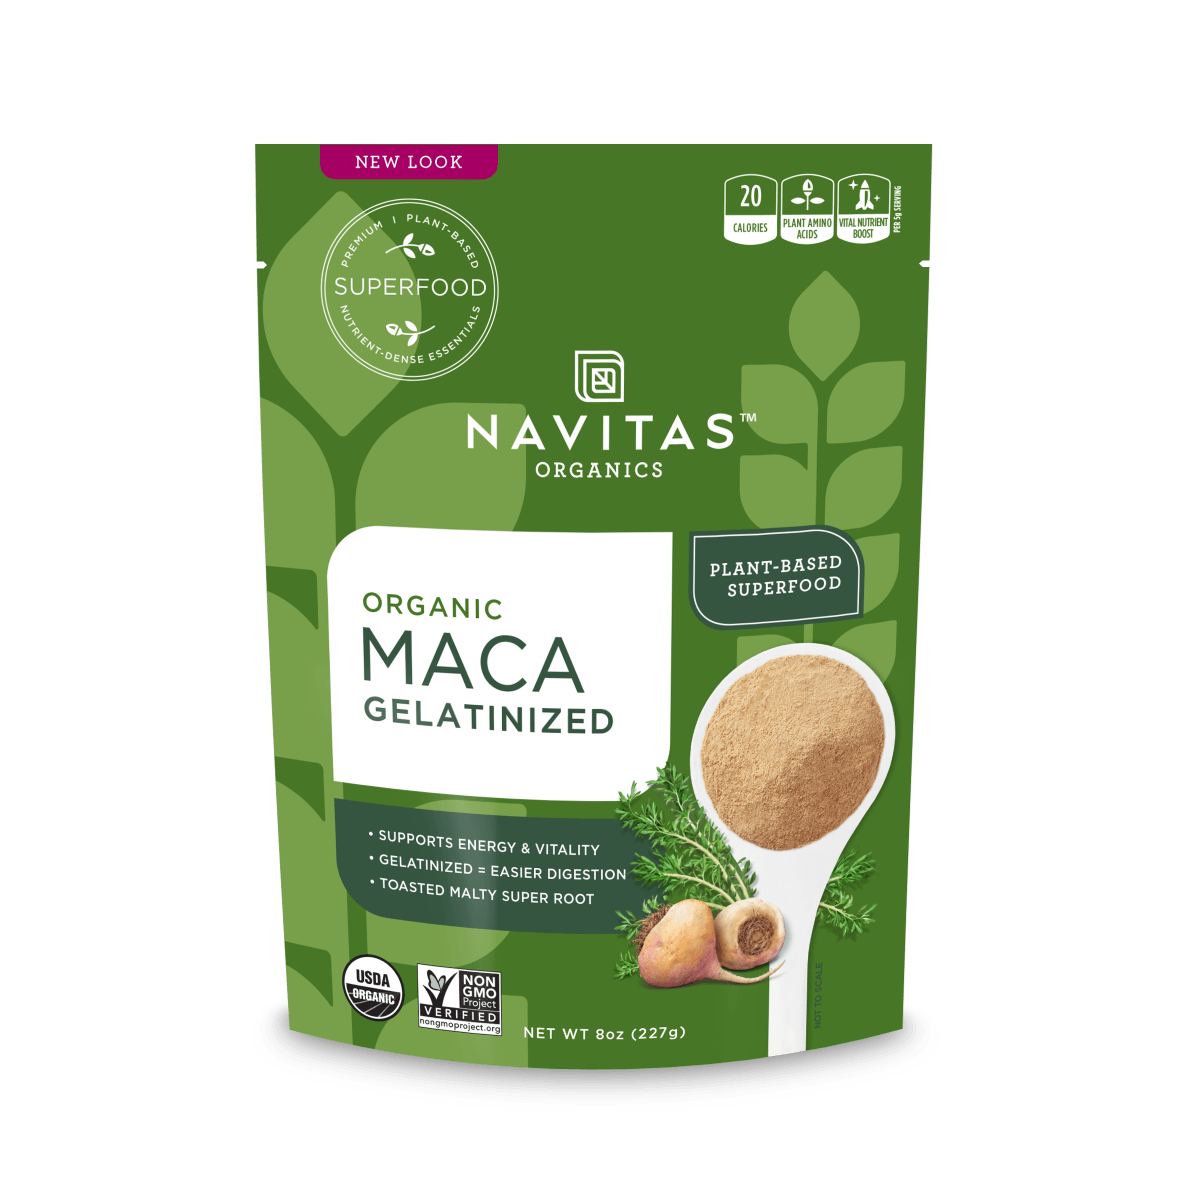 Supplements & Vitamins - Navitas Organics - Organic Maca Gelatinized Powder, 227g